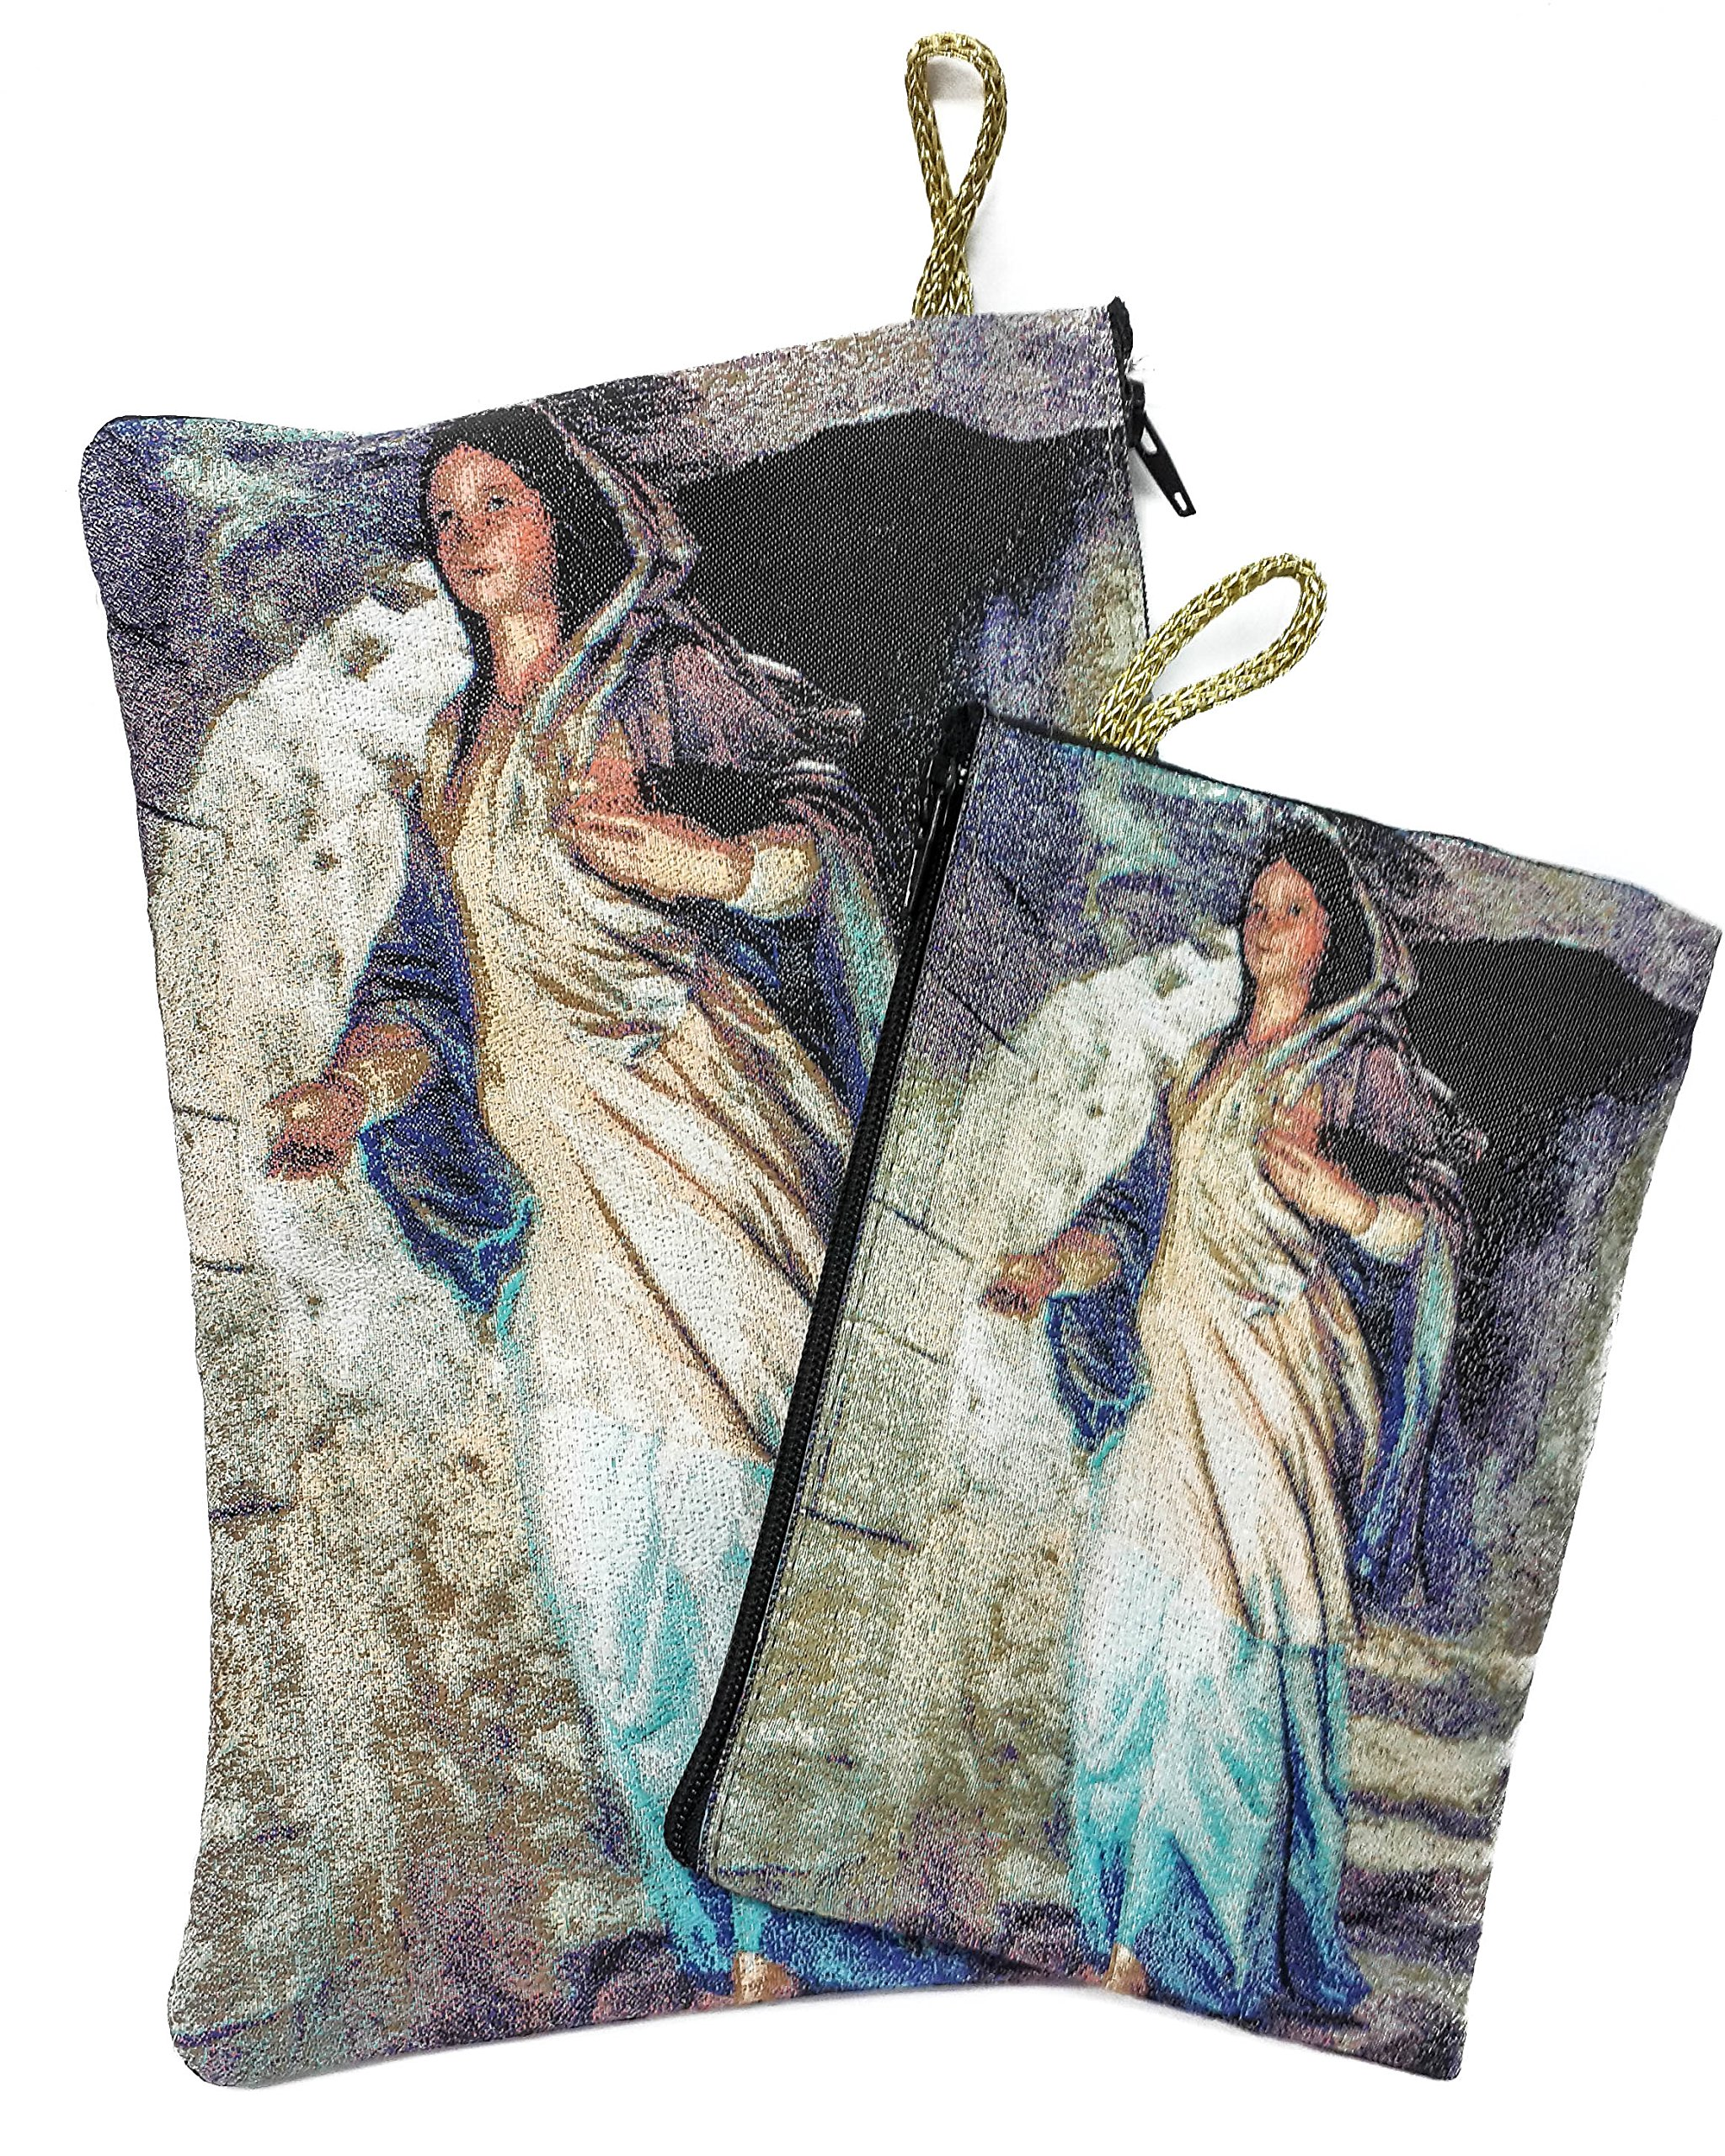 Set Madonna Virgin Mary Rosary Icon Pouch Tapestry Keepsake Pray Case Jerusalem by Nazareth Market Store